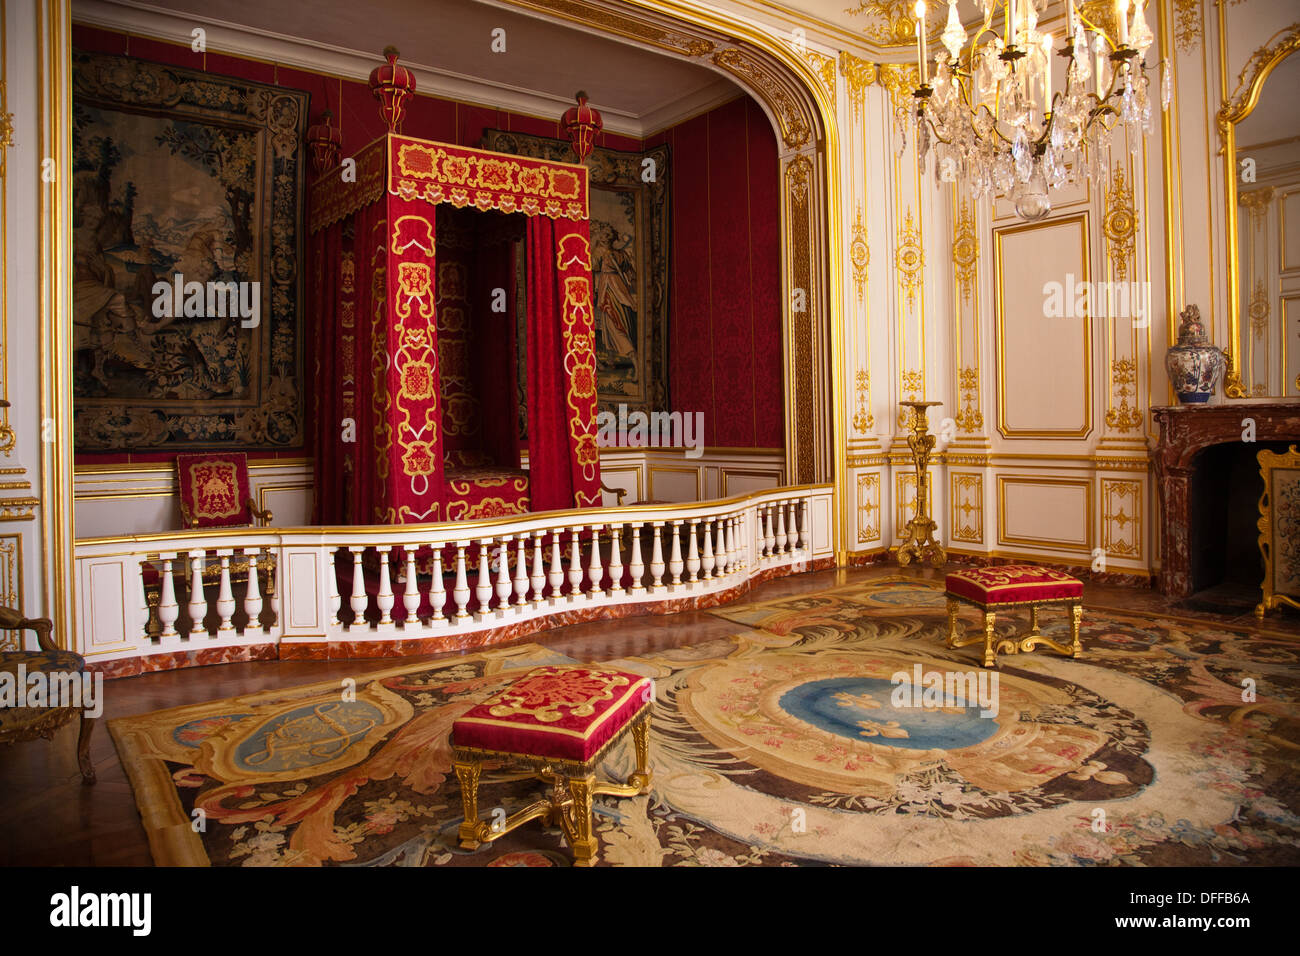 Castle Dining Room The Bedroom Of Louis Xiv In Chateau De Chambord In The